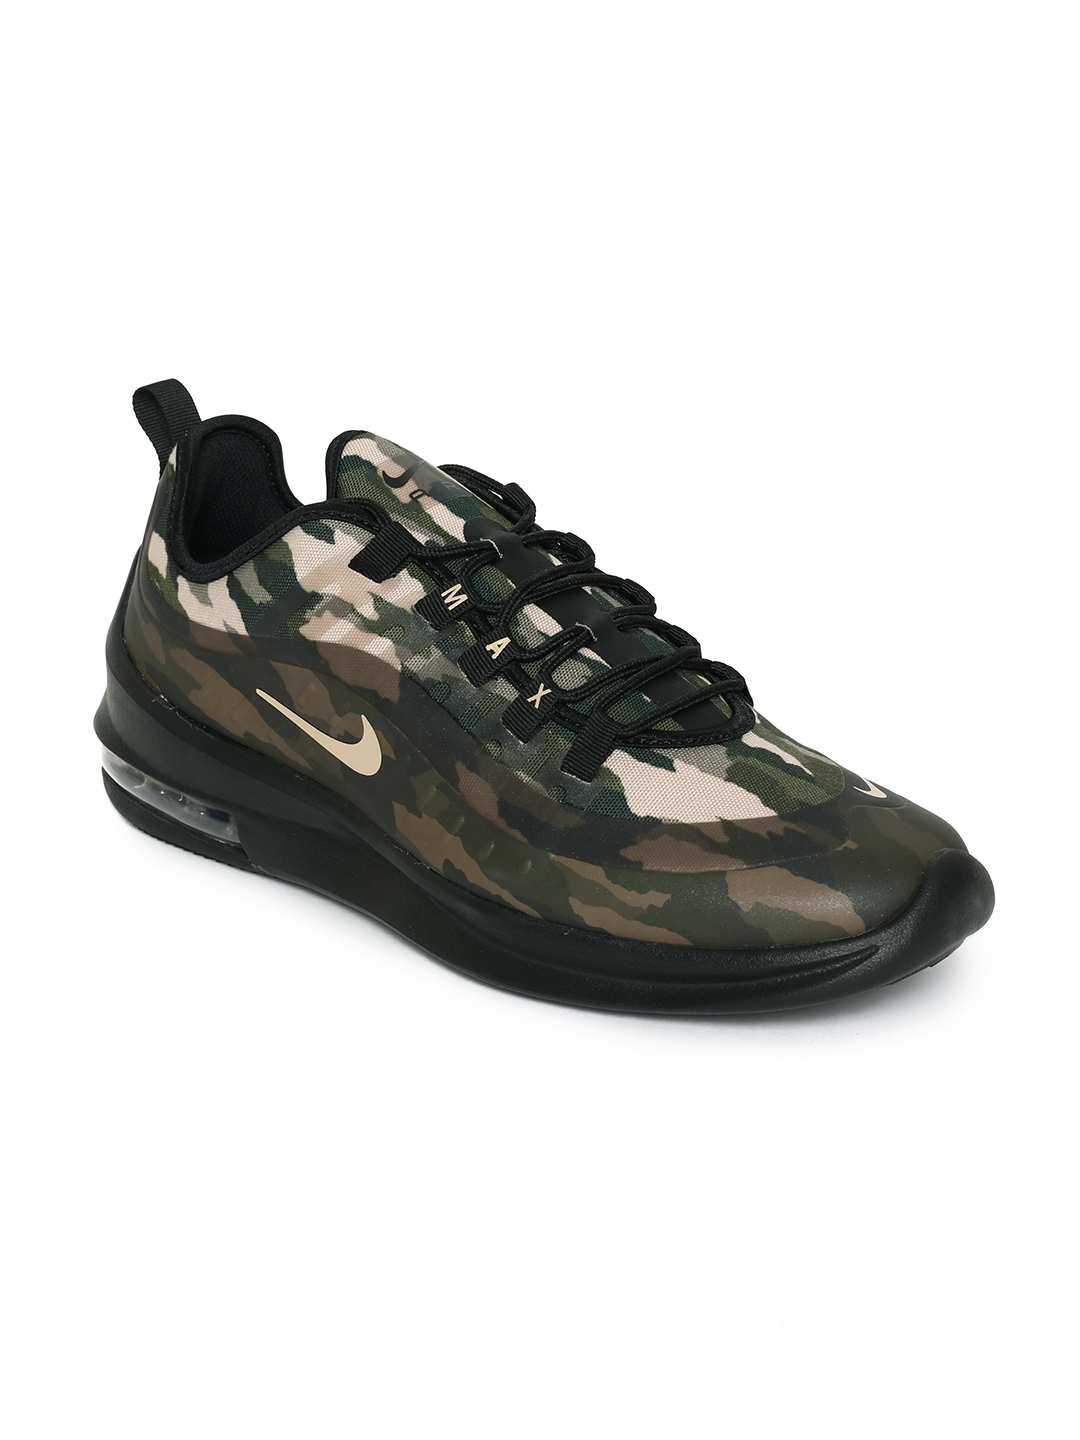 806e7e8c132c Buy Nike Men Black   Olive AIR MAX AXIS PREM Sneakers - Casual Shoes ...